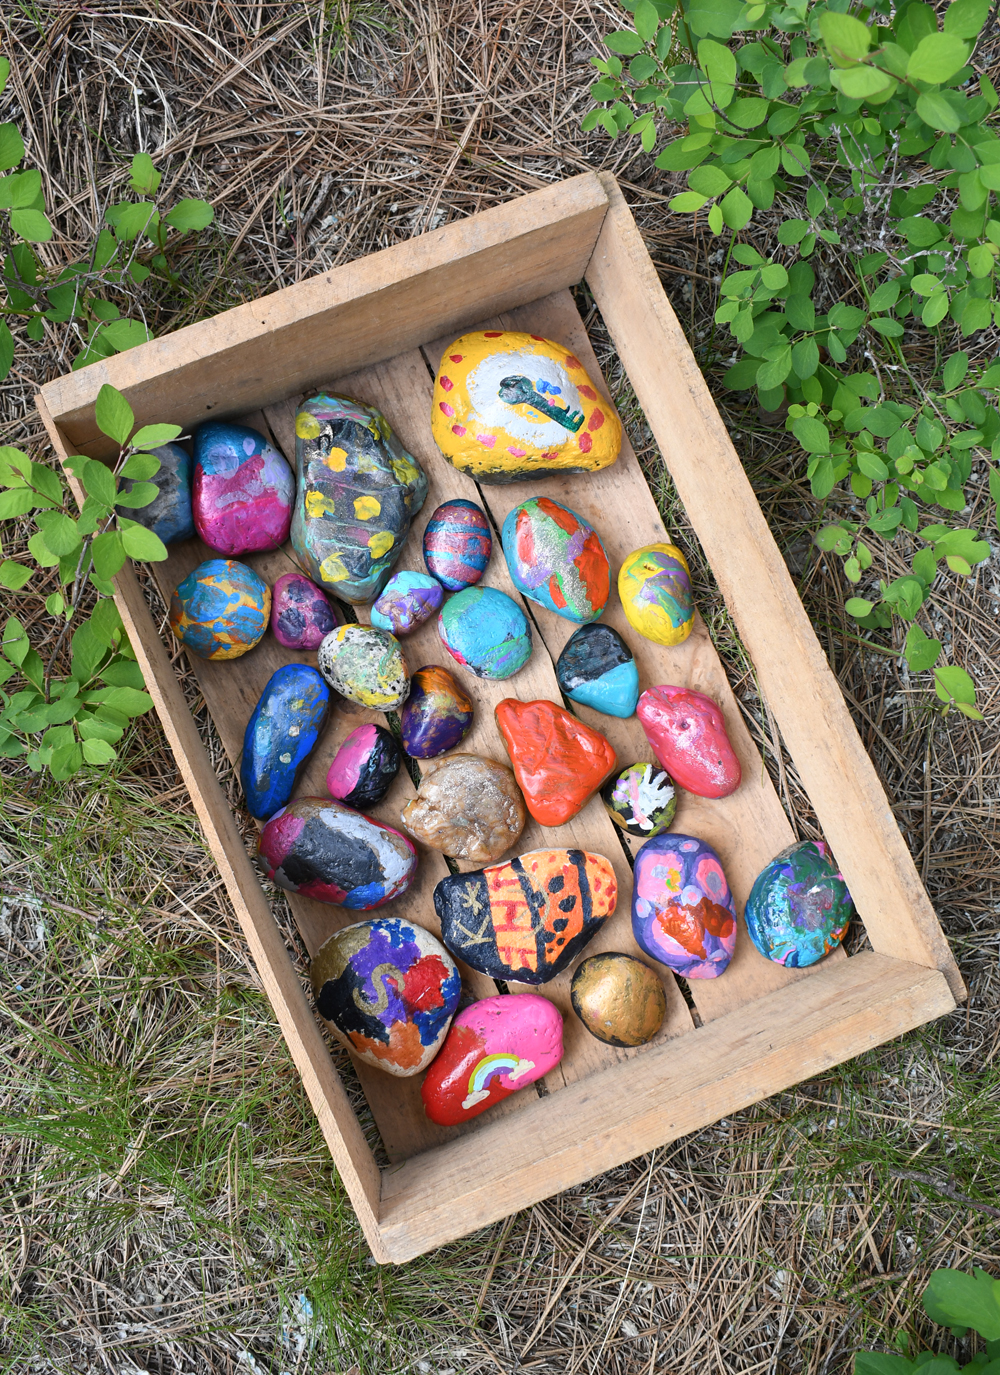 Hide painted rocks #CDArocks things to do in Coeur d'Alene